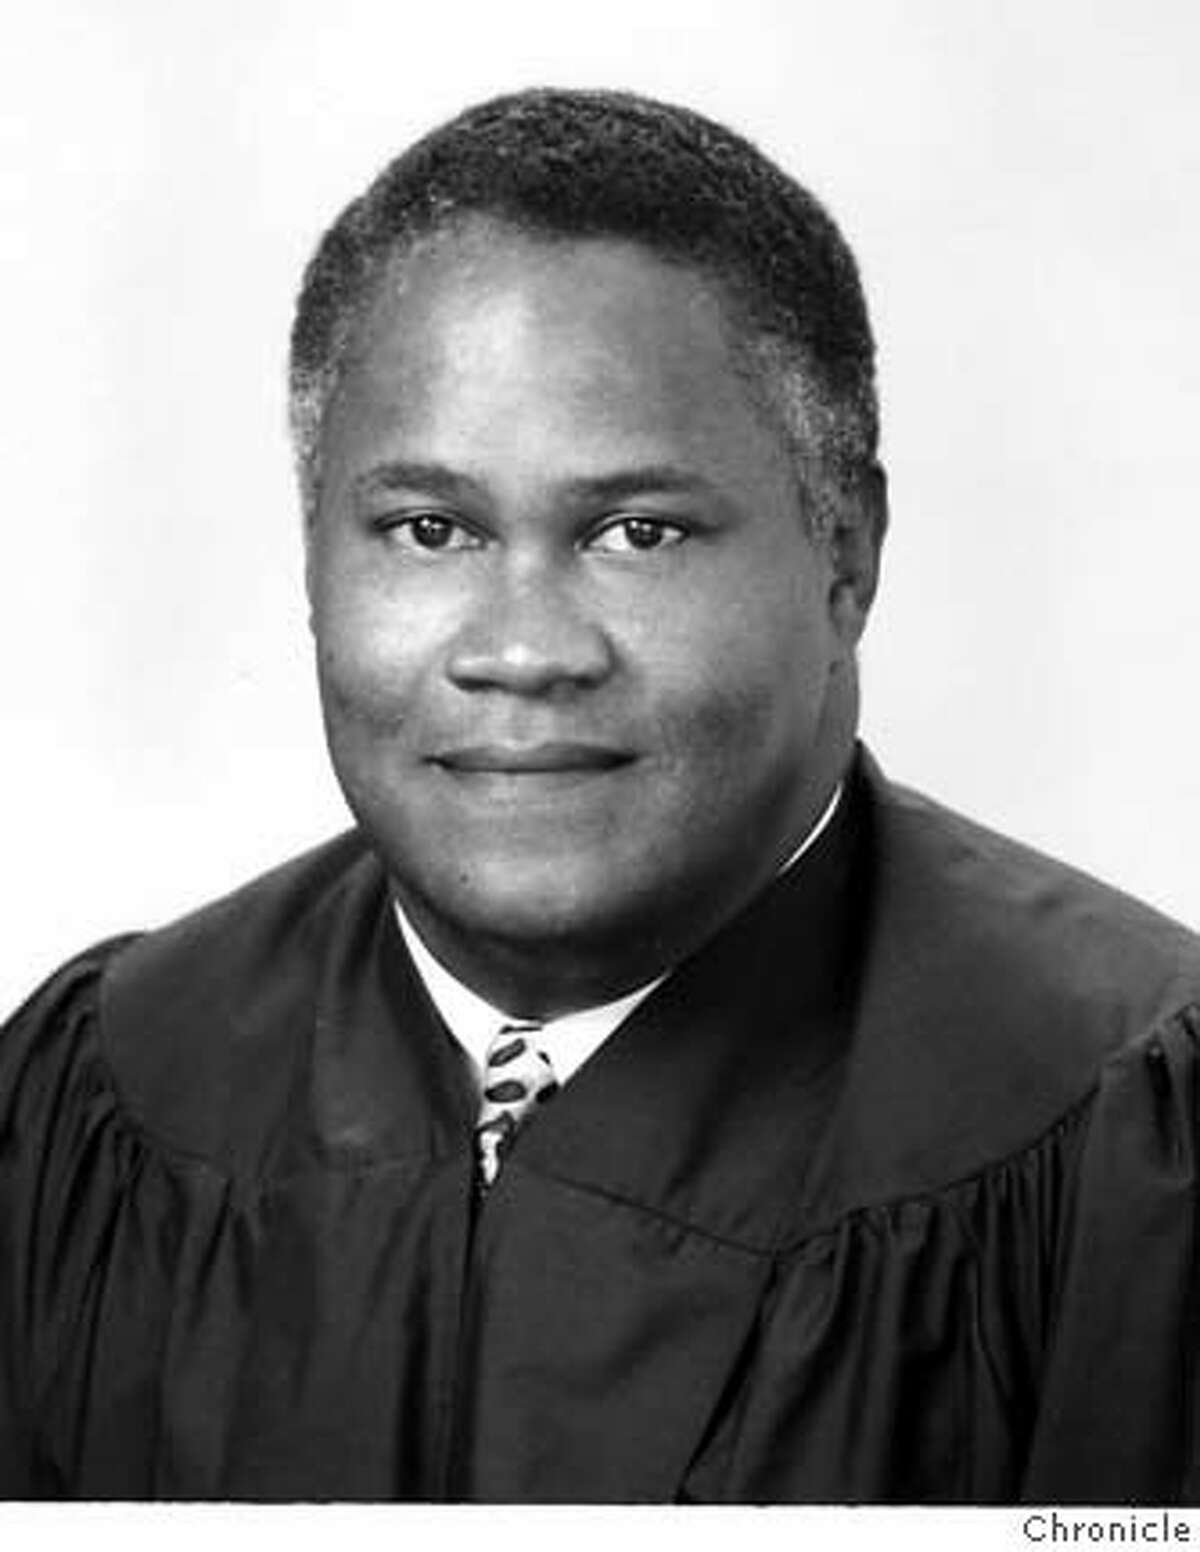 Chambers of U.S. District Judge Morrison England. He's one of the candidates referred by Schwarzenegger to the State Bar commission.